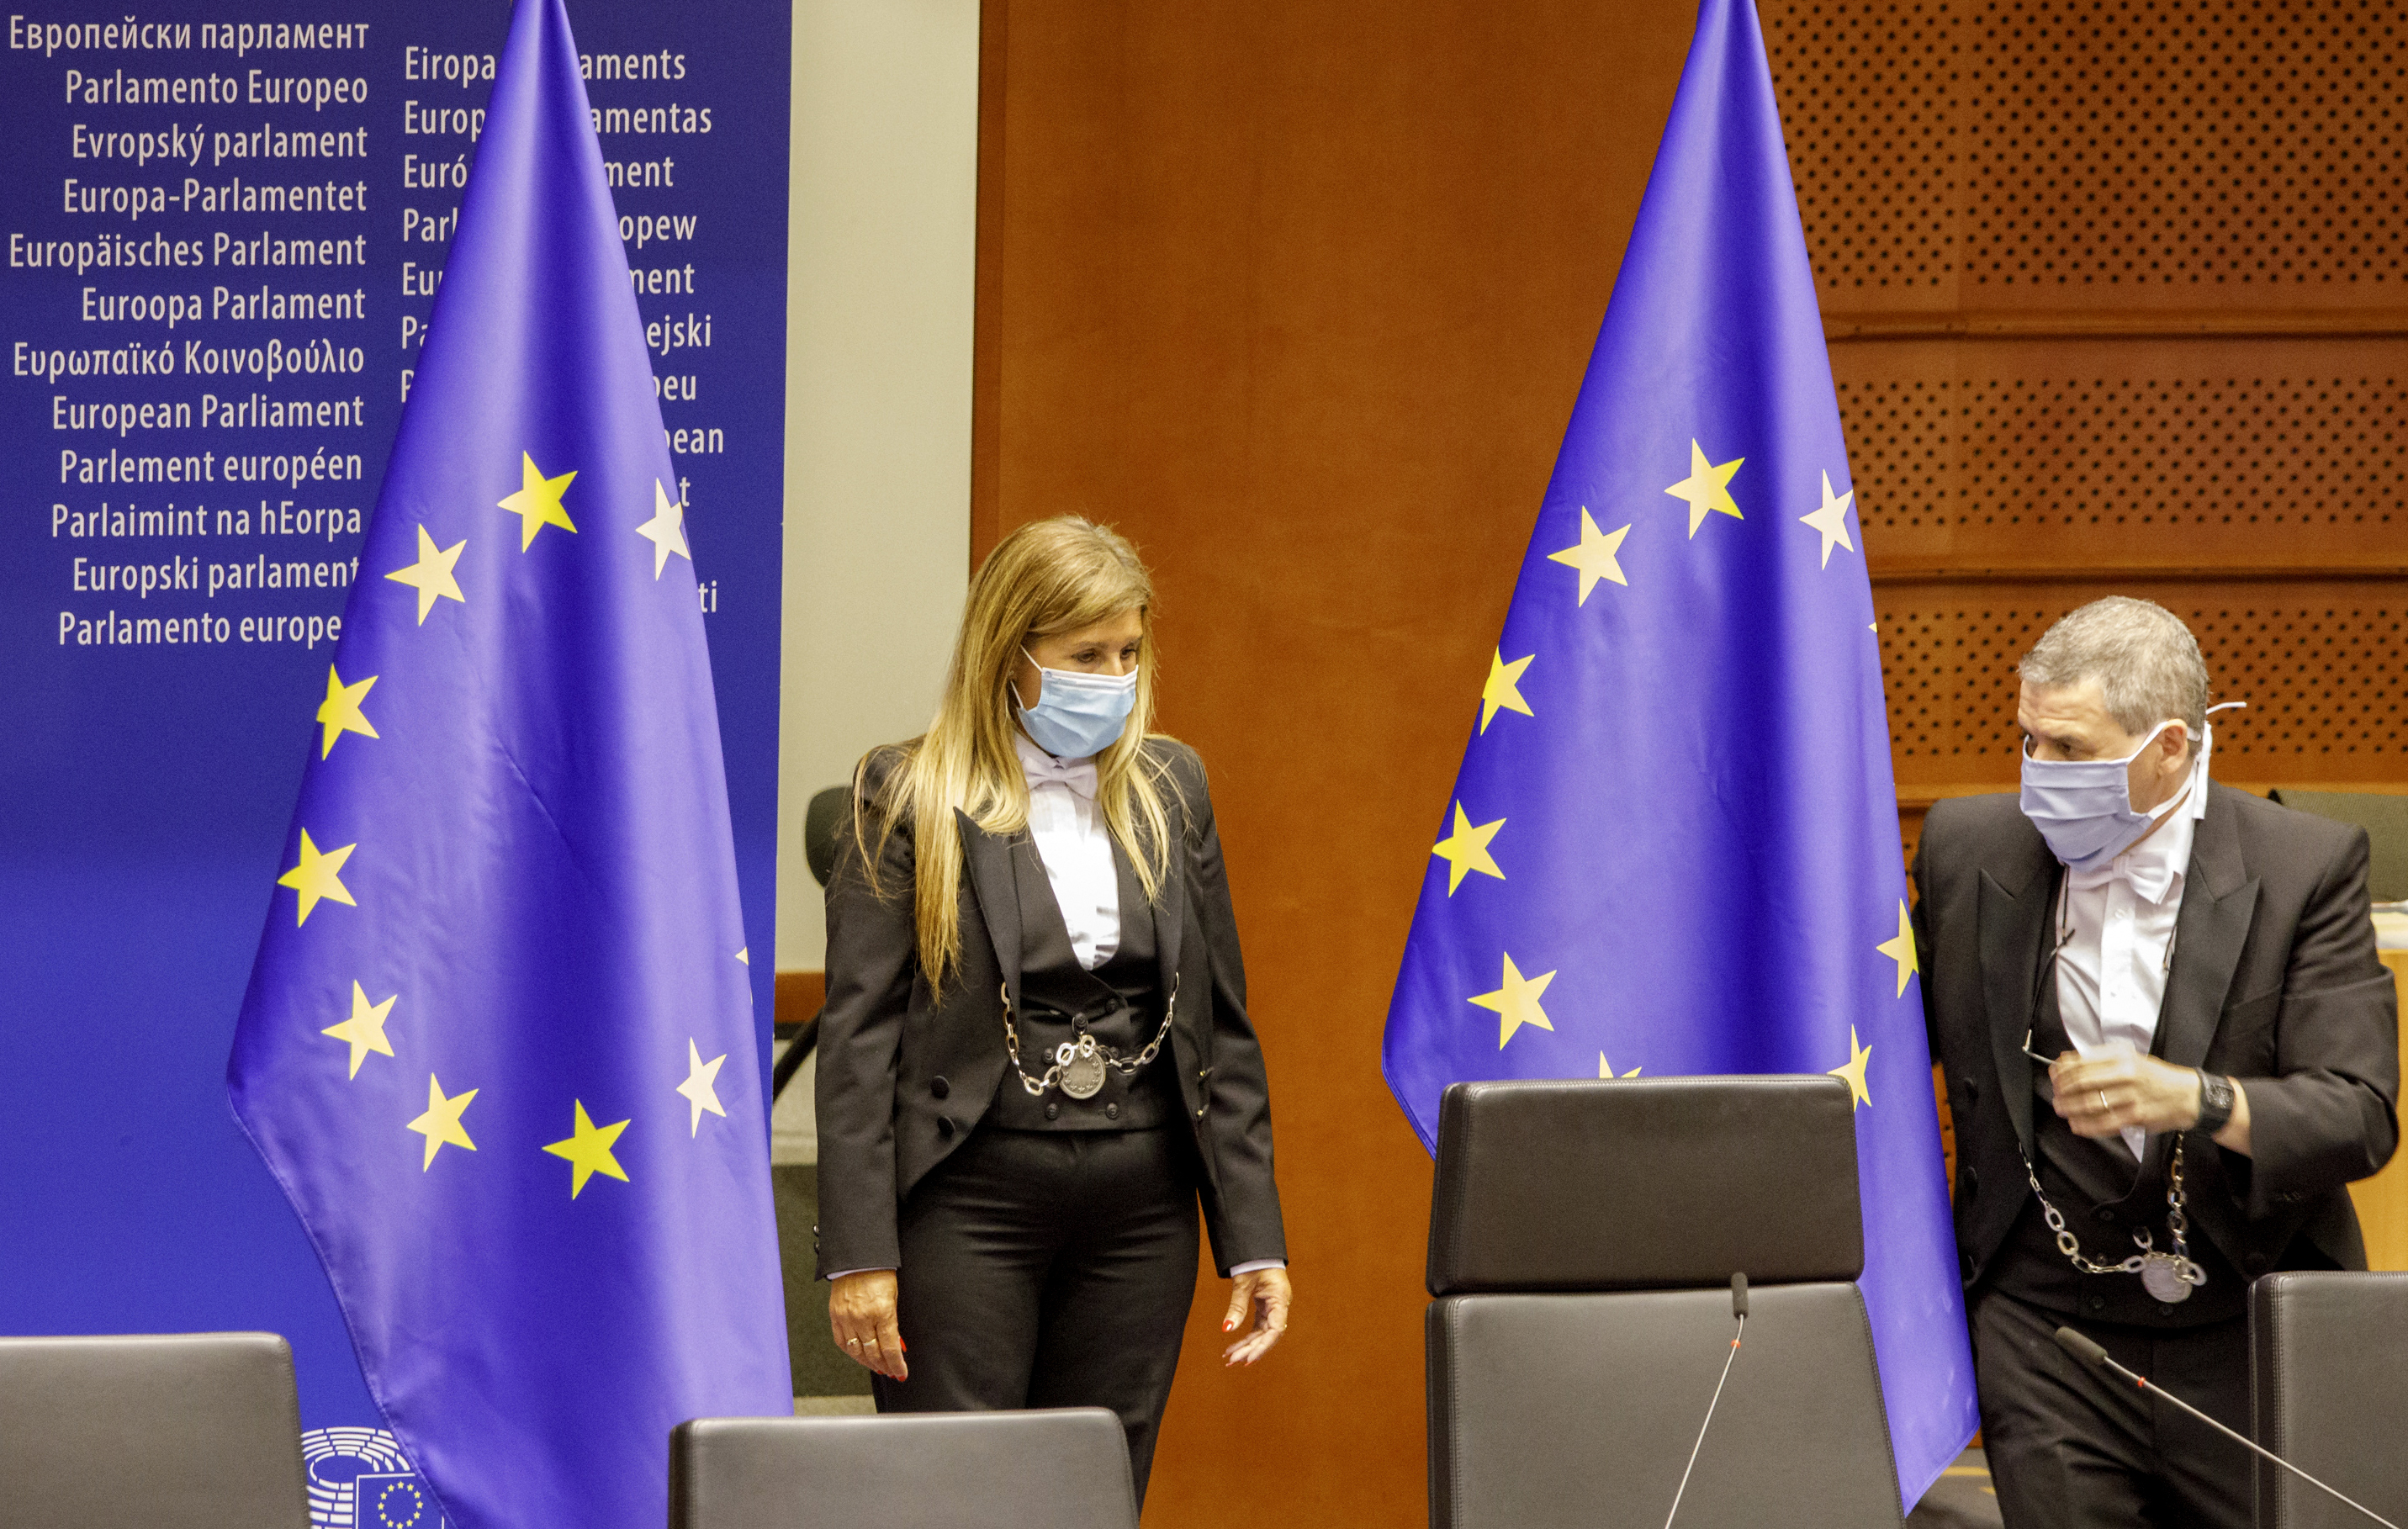 Two employees wear face masks, to prevent against the spread of coronavirus, as they prepare the plenary room at the European Parliament in Brussels, Wednesday, May 27, 2020. The European Union is to unveil Wednesday a massive coronavirus recovery plan worth hundreds of billions of euros to help countries rebuild their ailing economies, but the bloc remains deeply divided over what conditions should be attached to the funds. (AP Photo/Olivier Matthys)